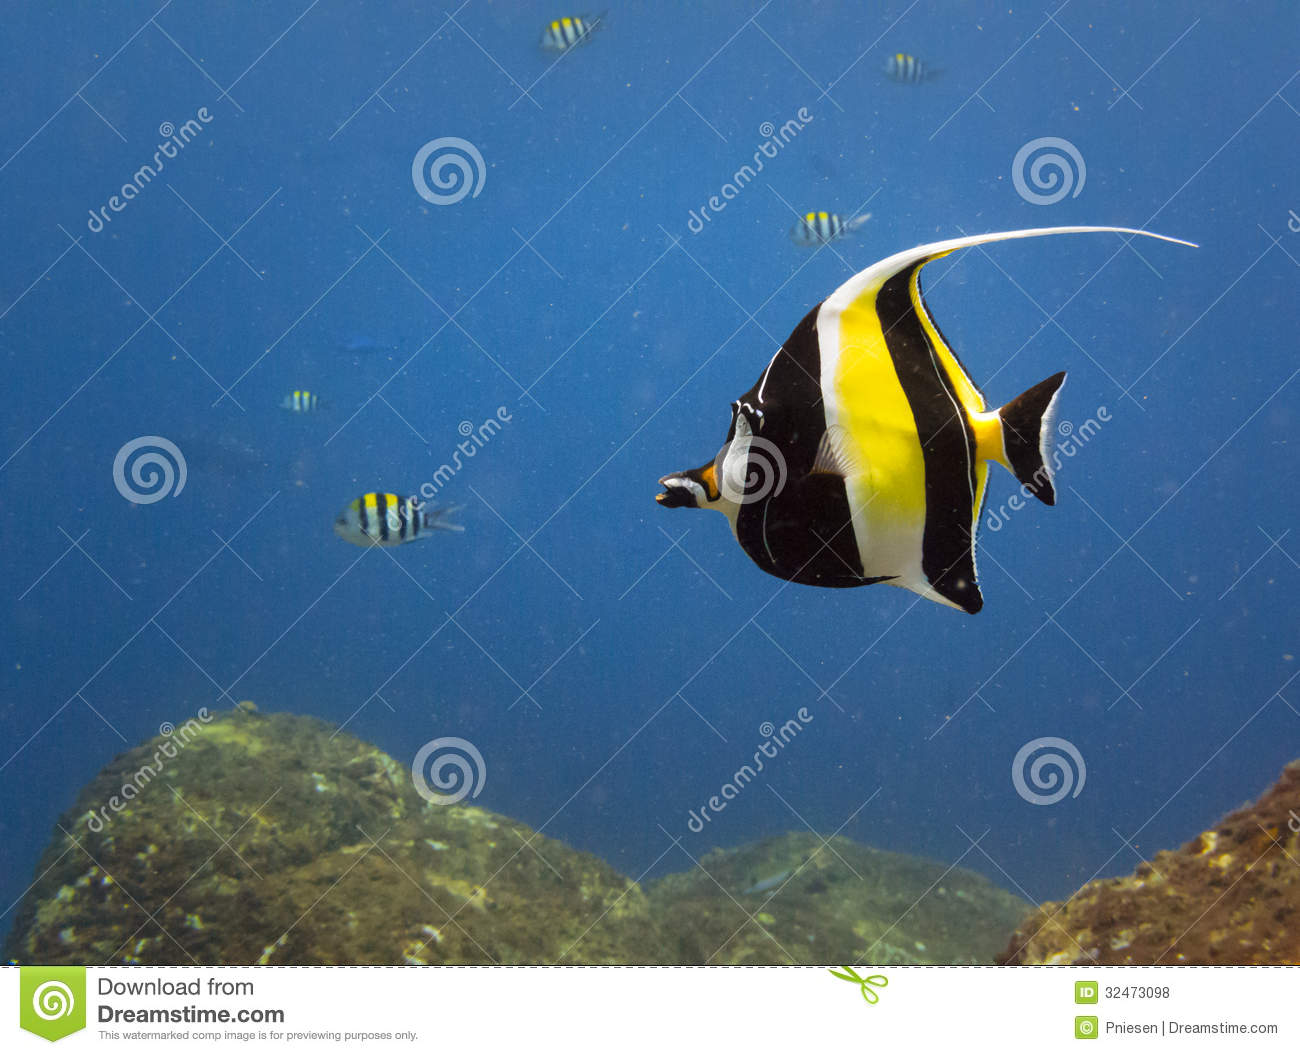 yellow, black, white striped tropical fish swim castle rock reef